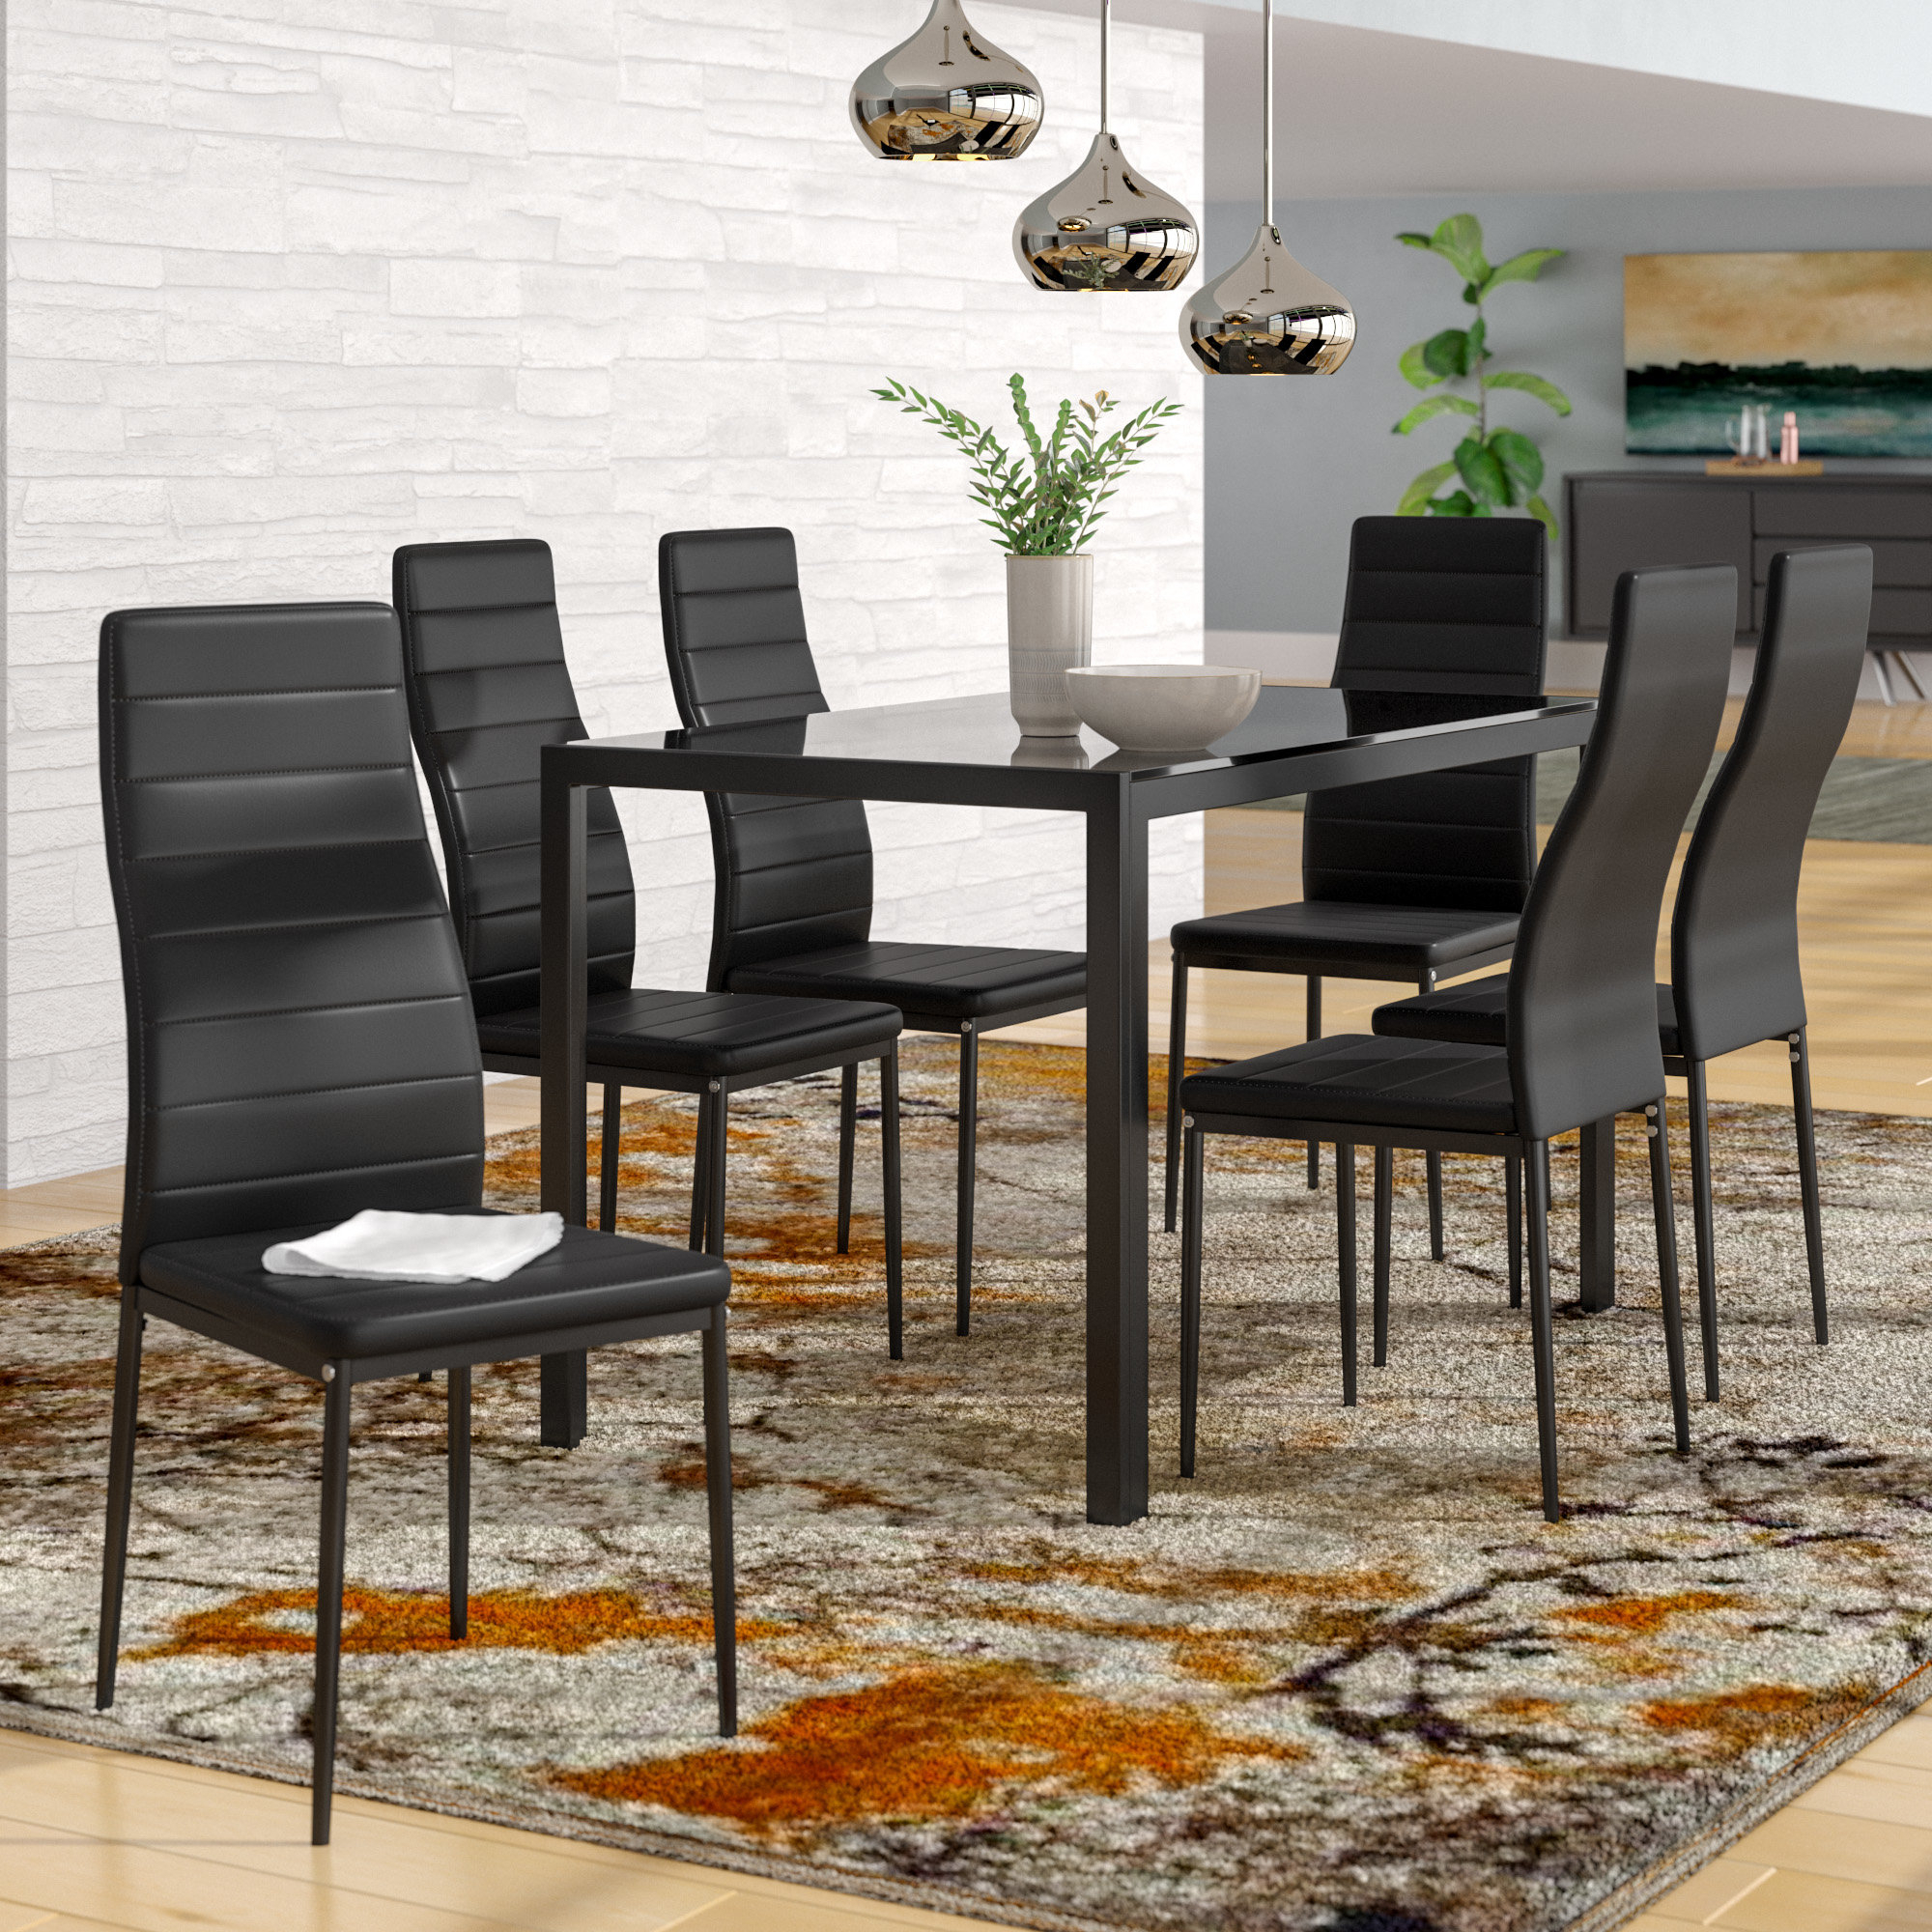 Orren Ellis Renick Modern 7 Piece Dining Set & Reviews | Wayfair (View 16 of 20)